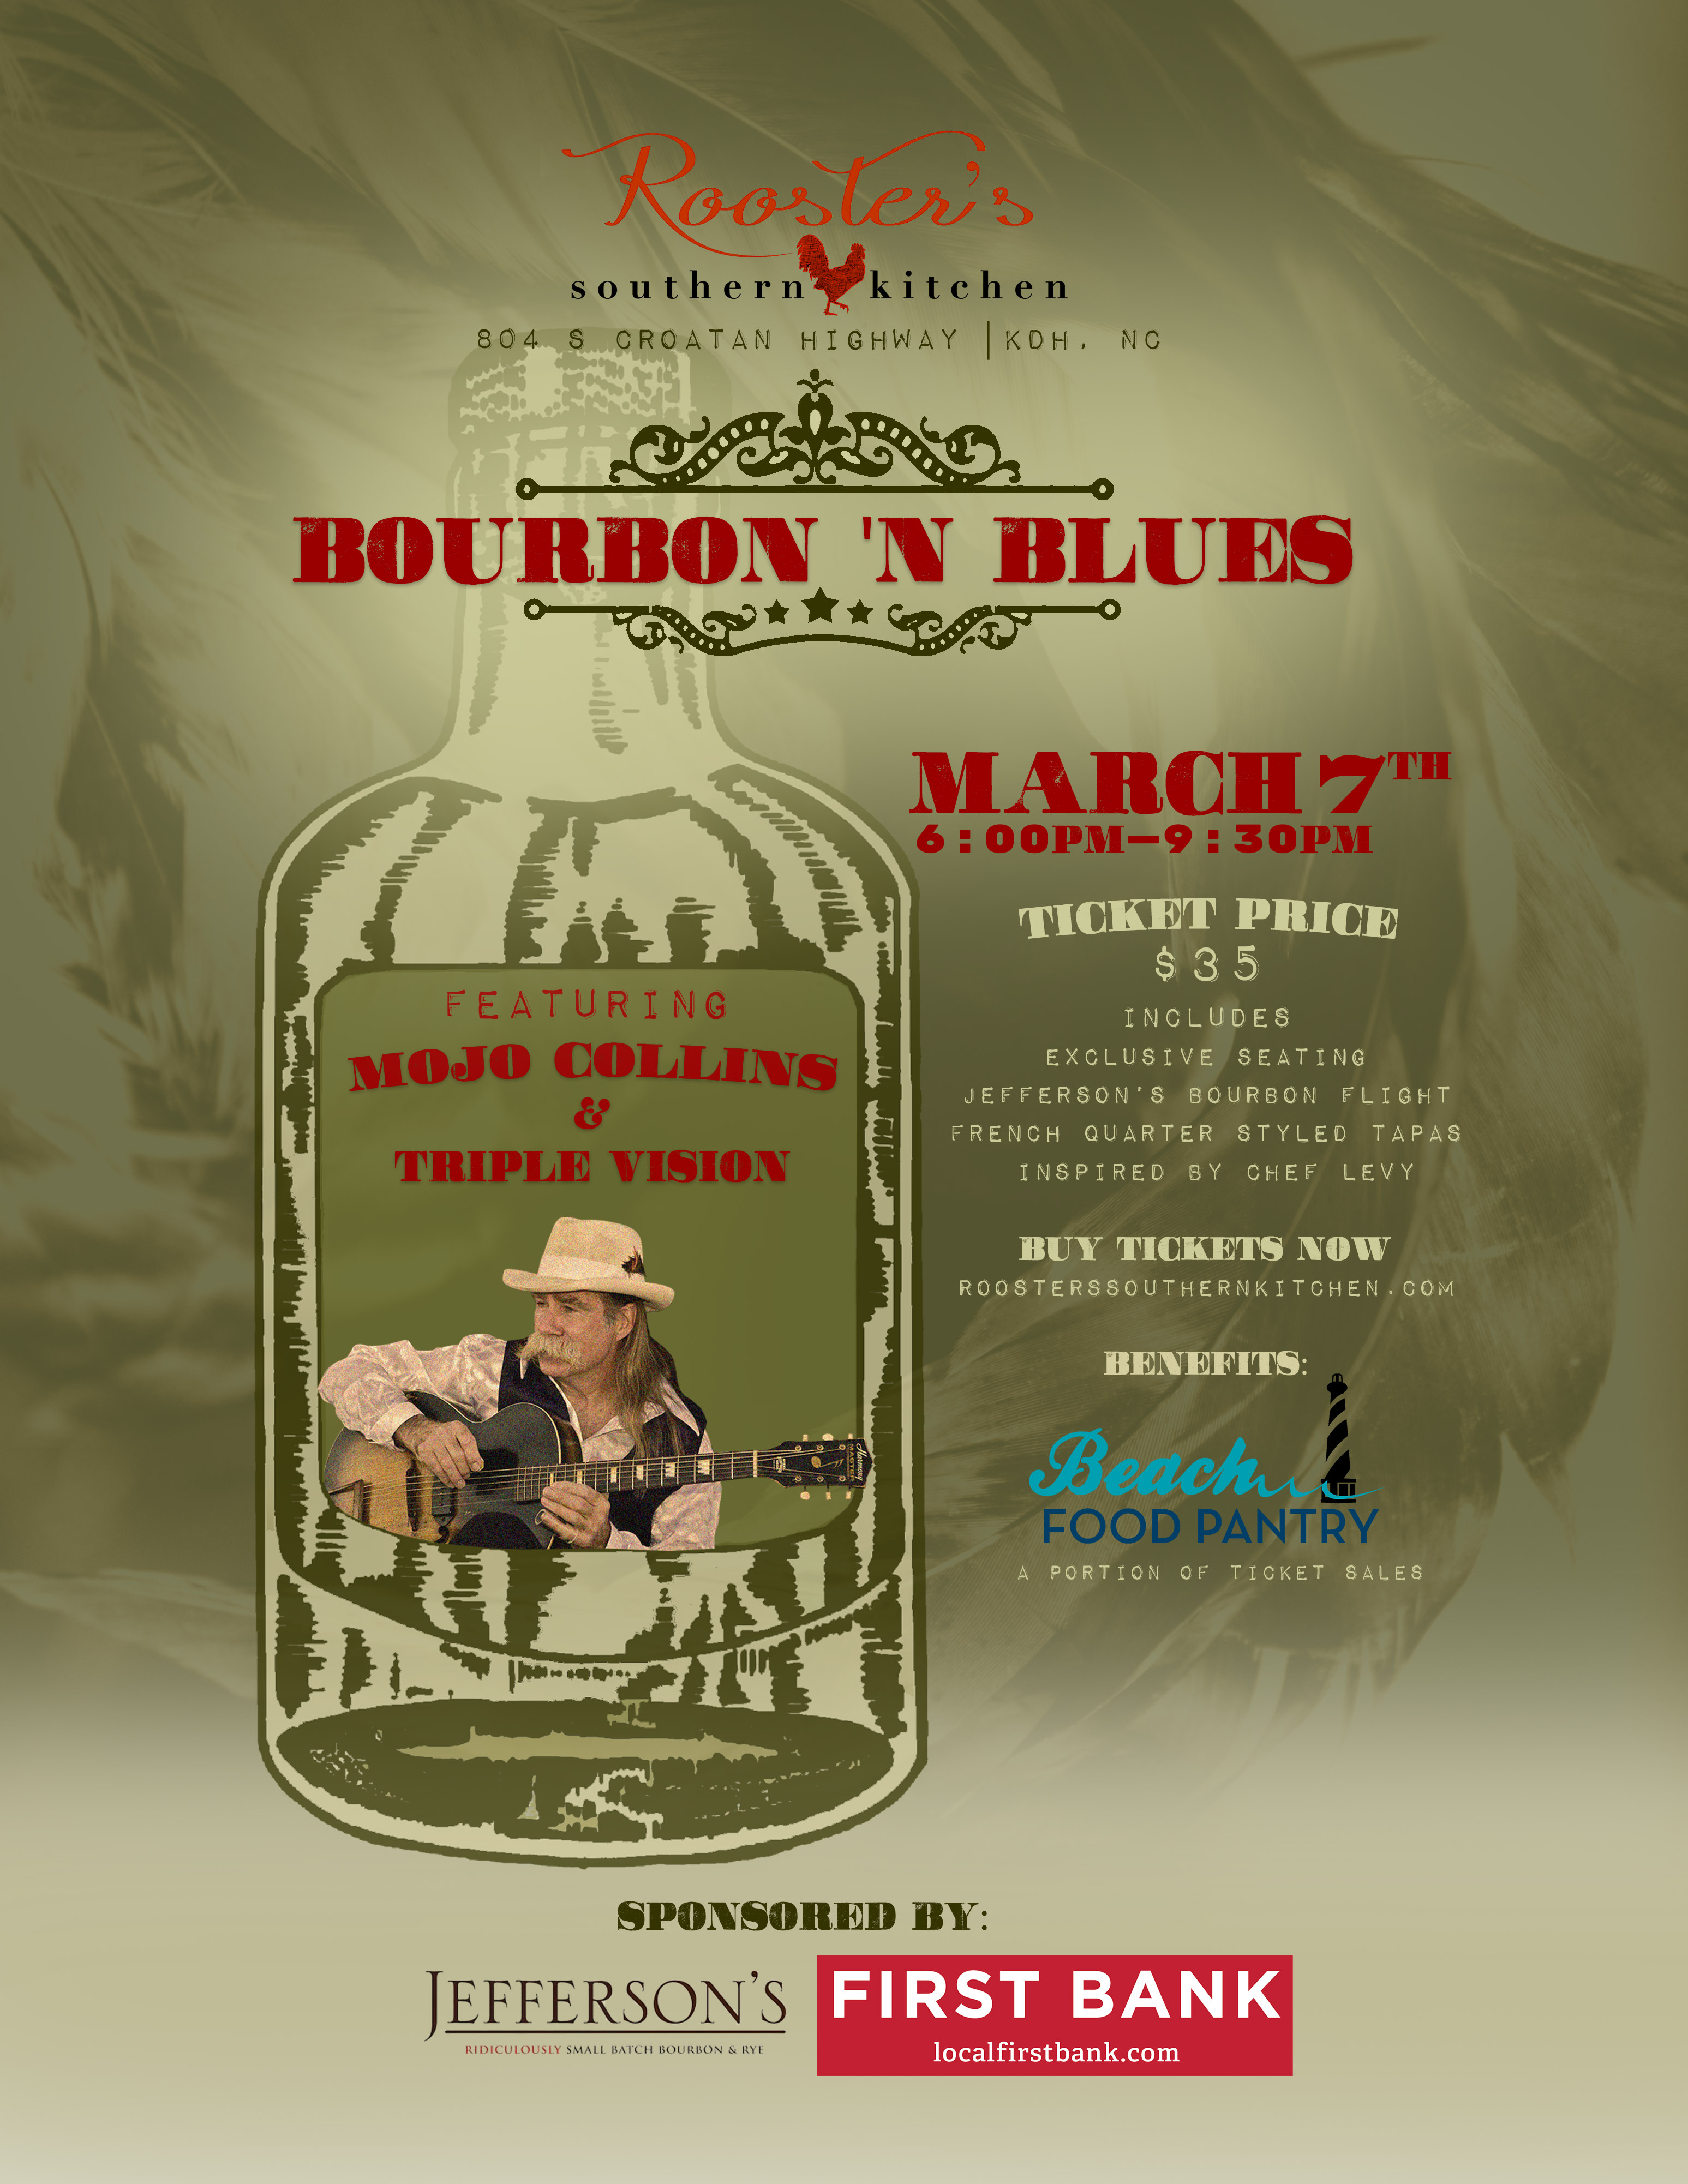 Bourbon N' Blues featuring Mojo Collins & Triple Vision